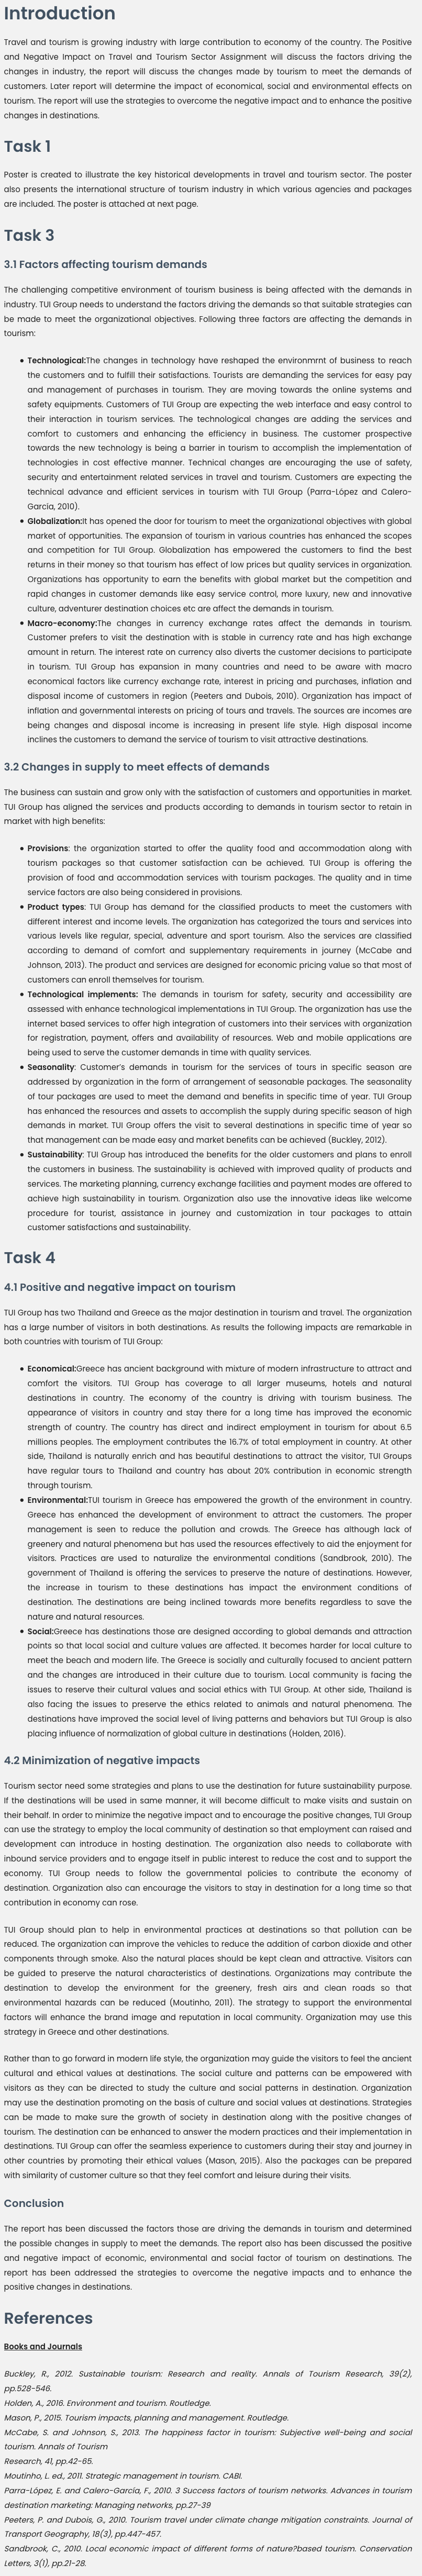 Positive and Negative Impact on Travel and Tourism Sector Assignment